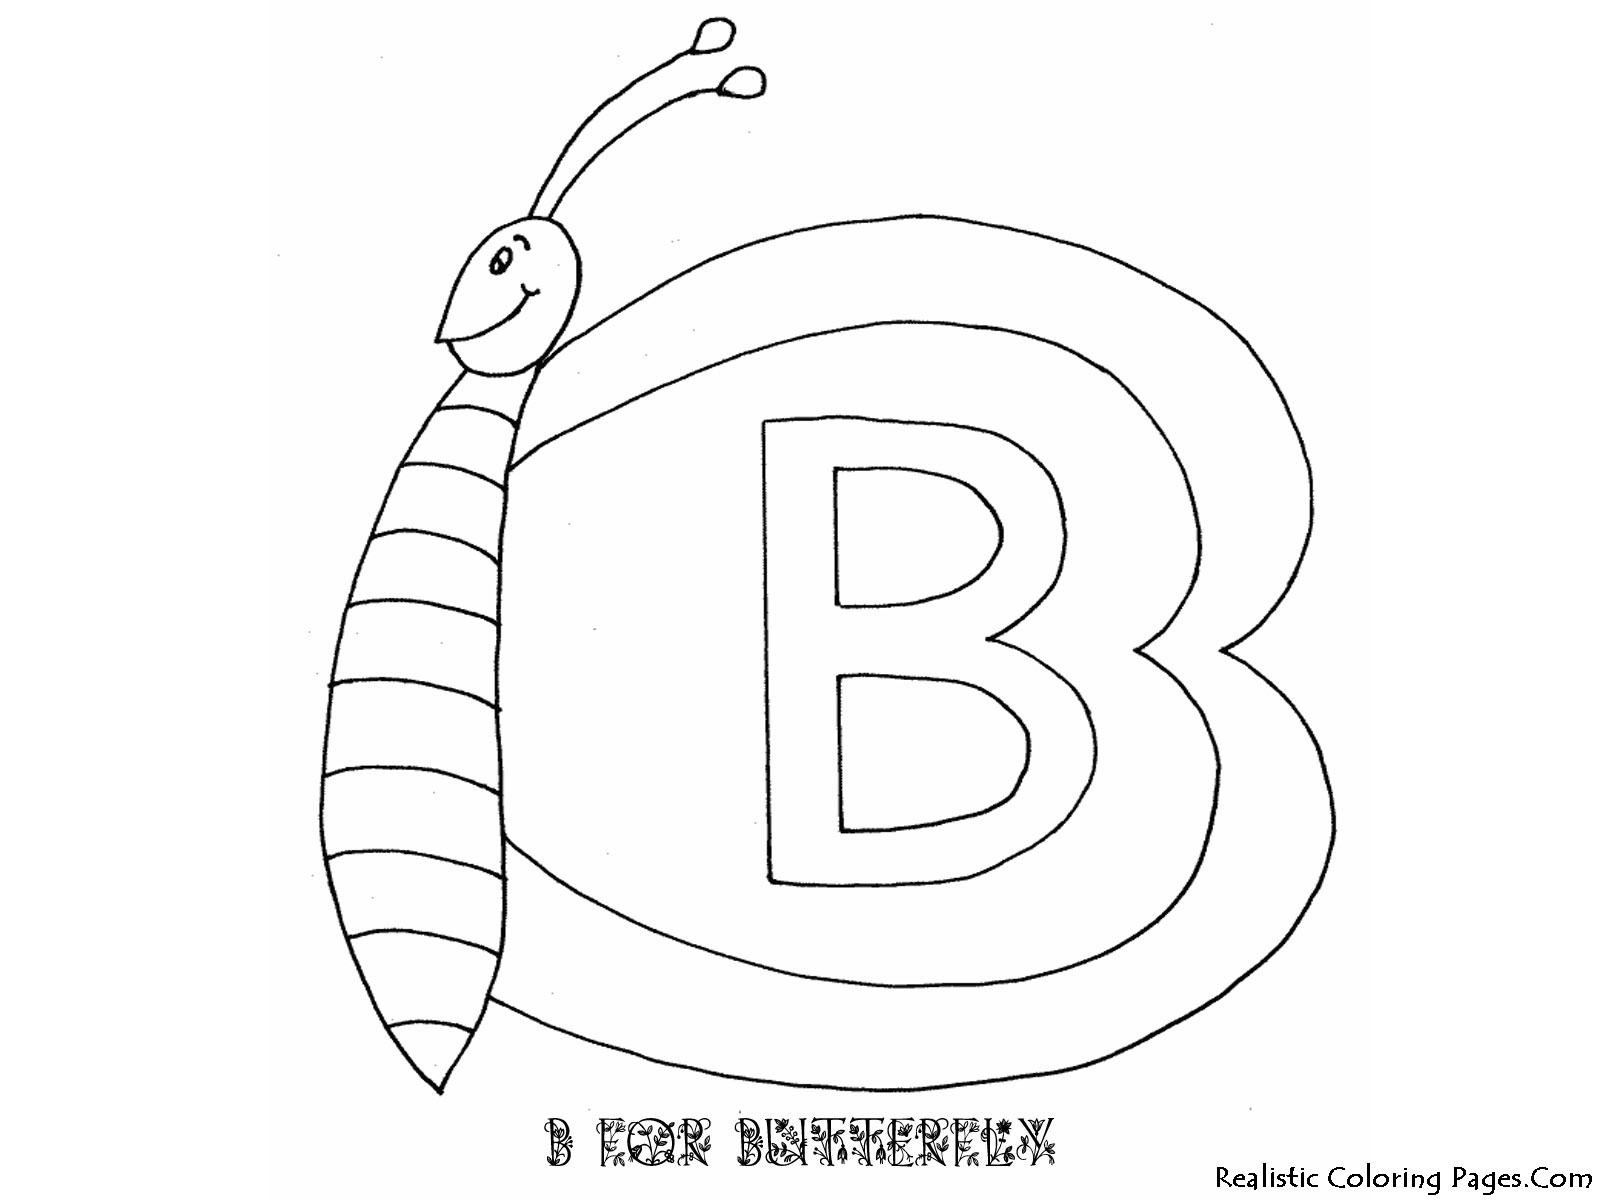 b for butterfly coloring pages - photo#12